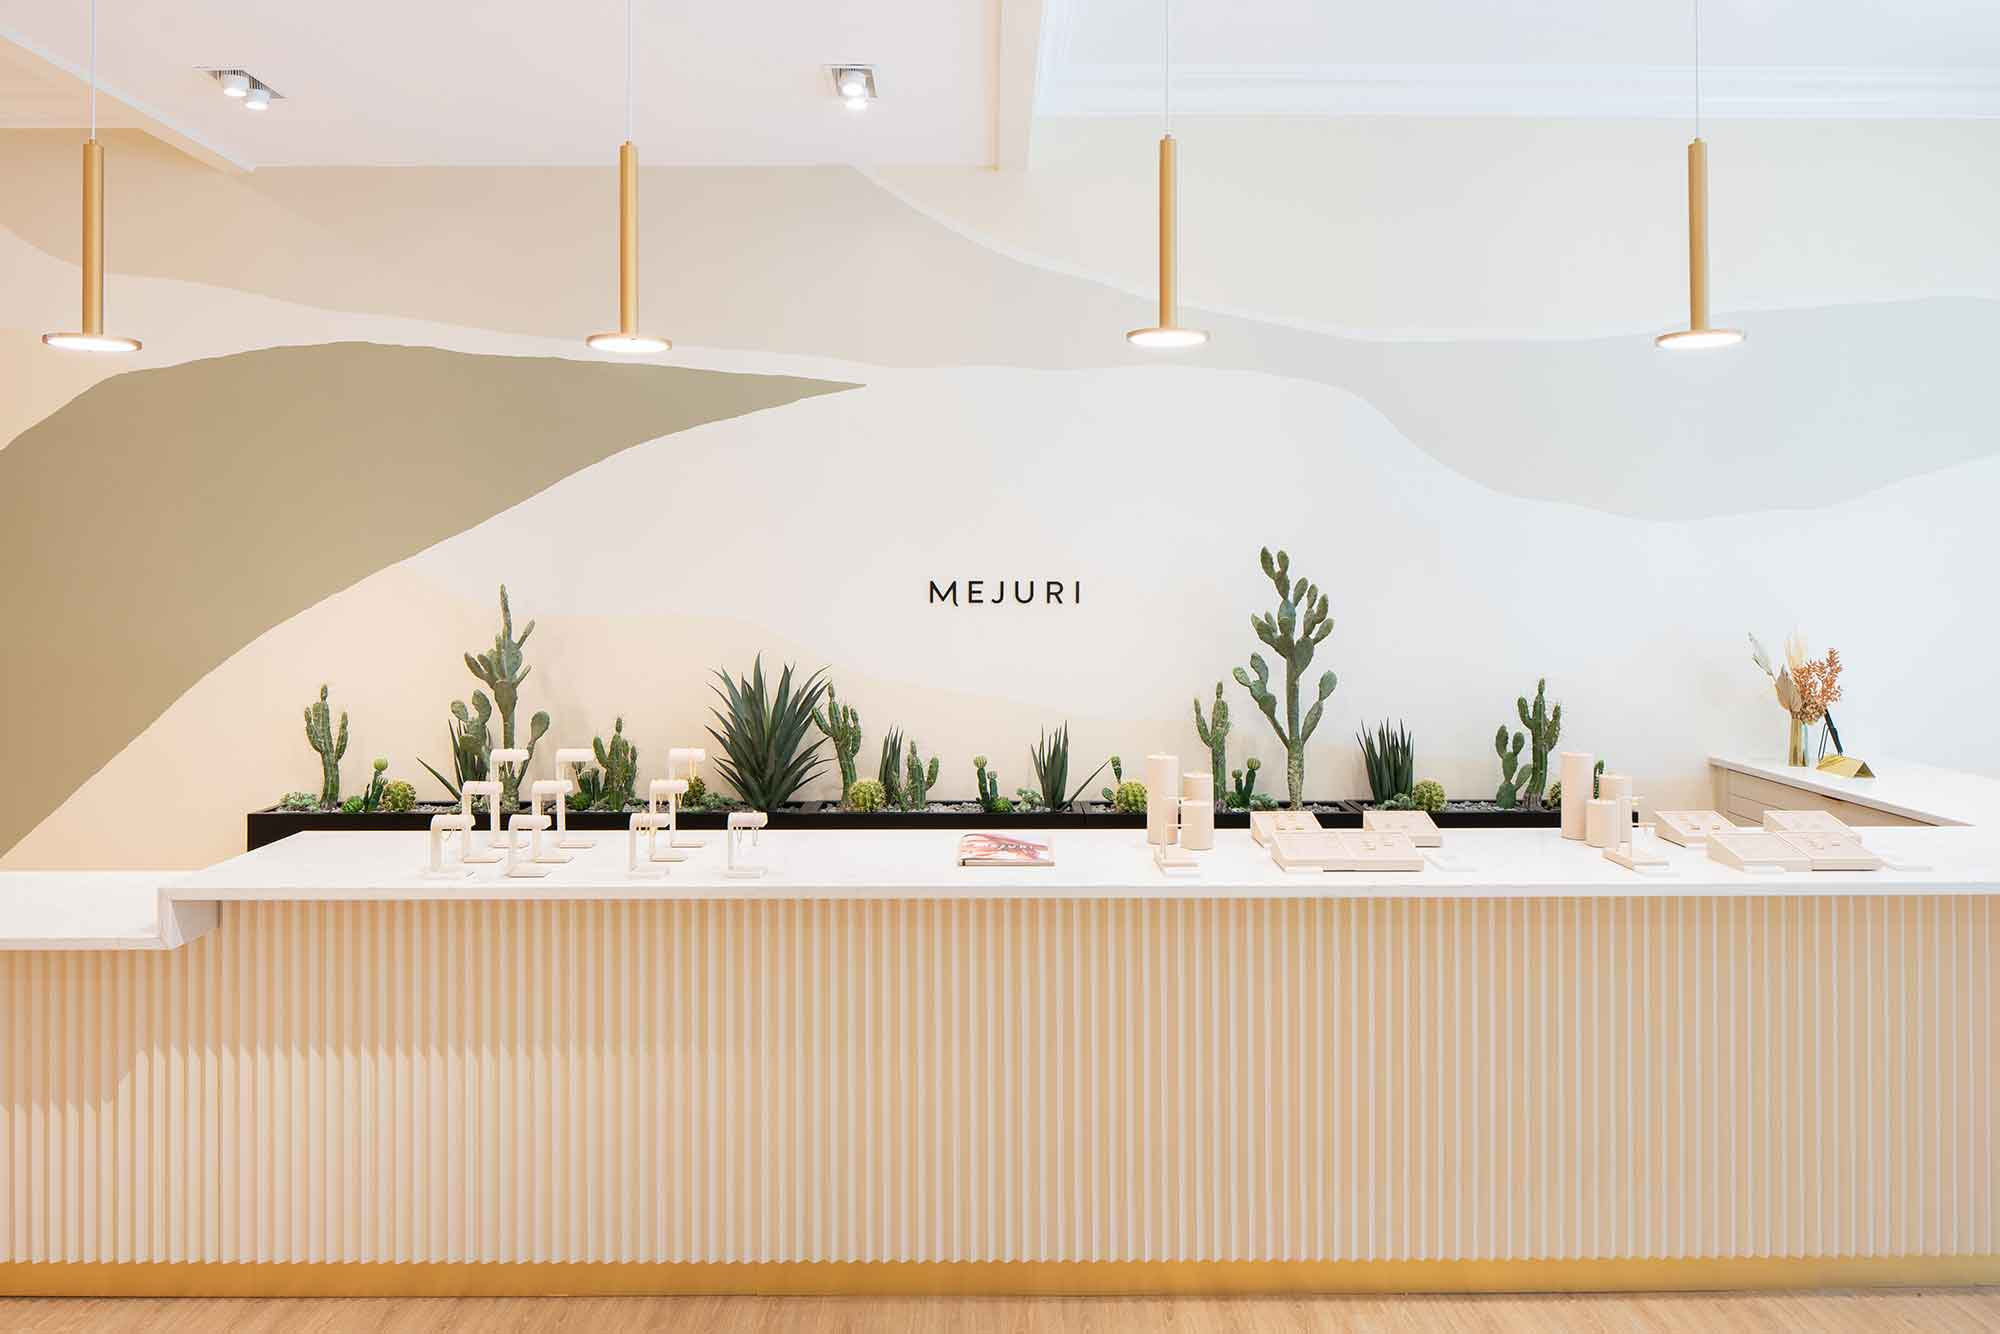 Counter at Mejuri with succulents behind it